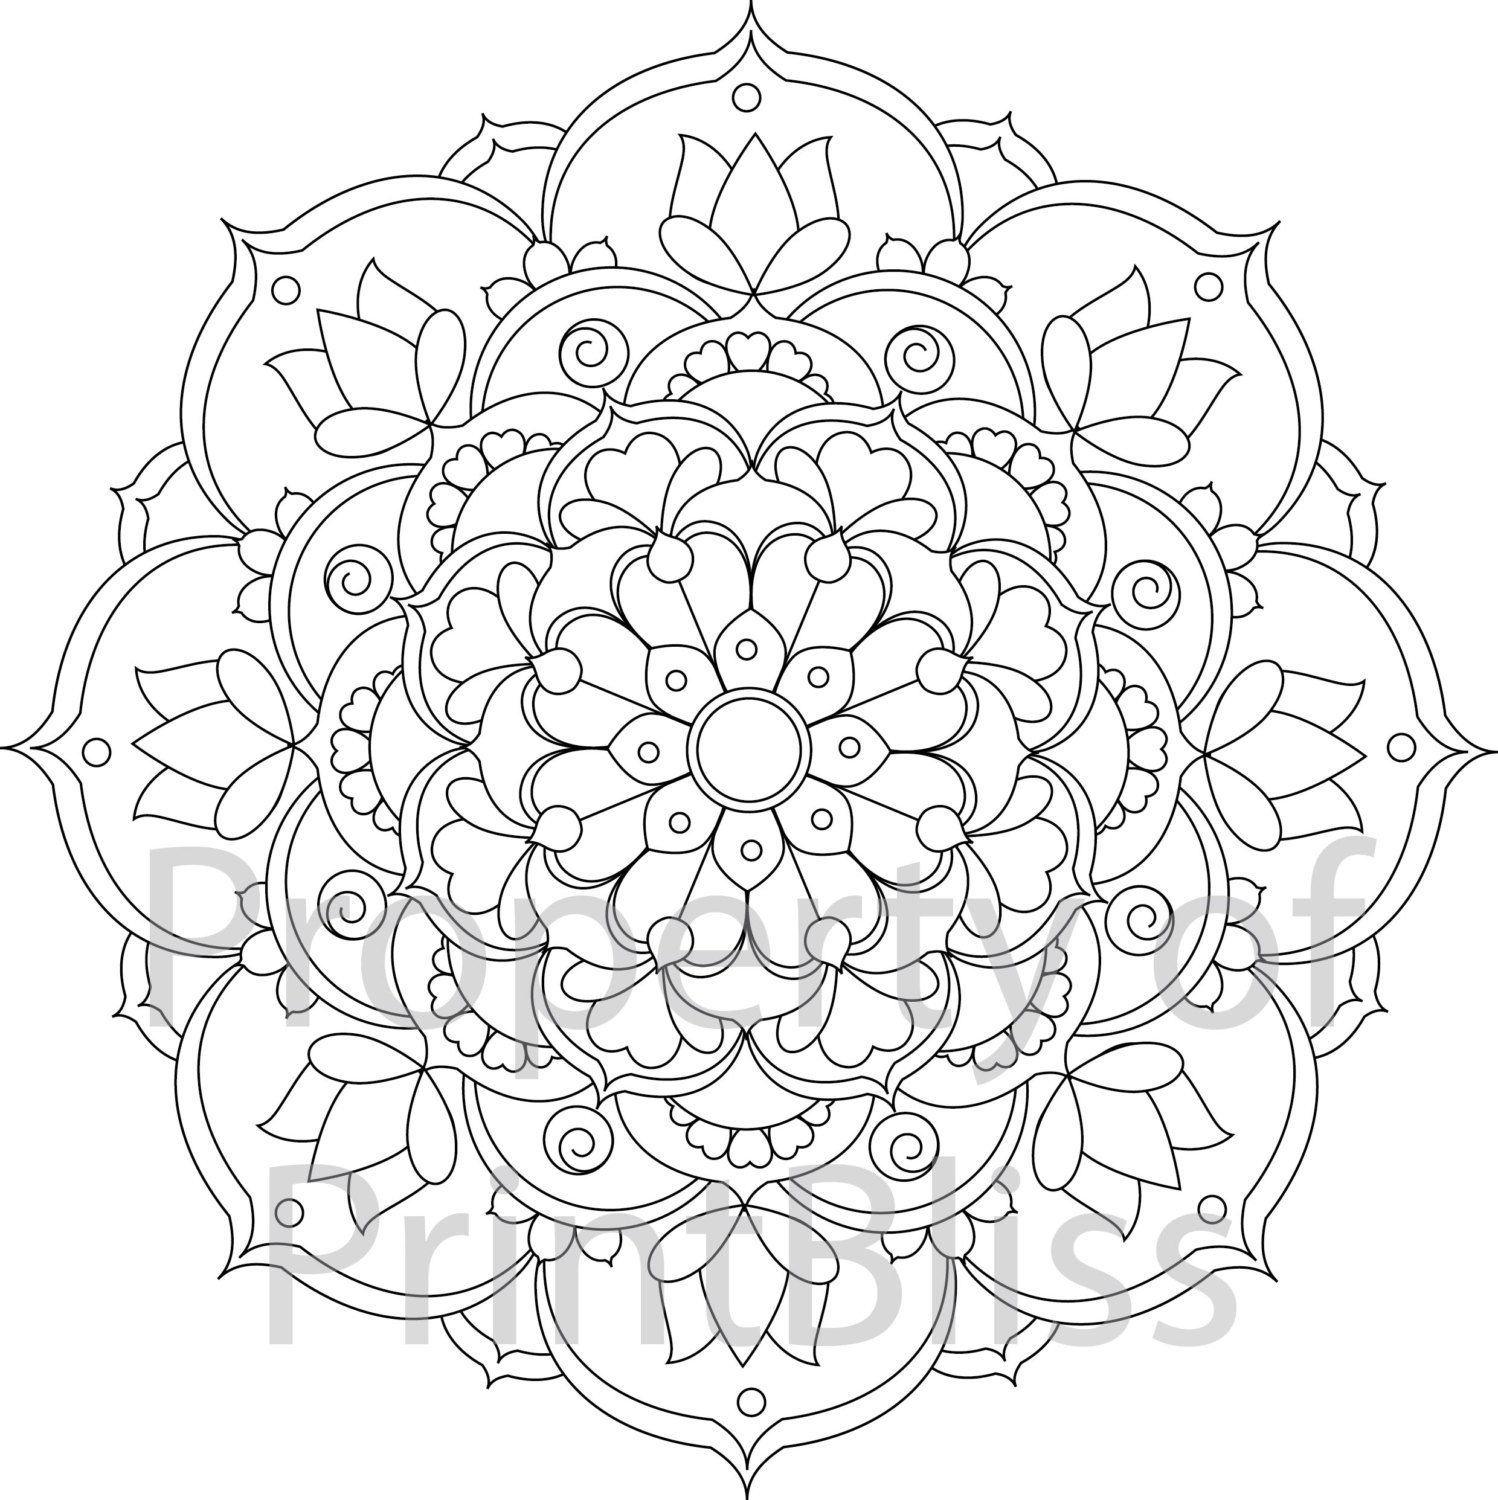 mandalas to color free mandala 132 by sadadoki on deviantart to color mandalas free